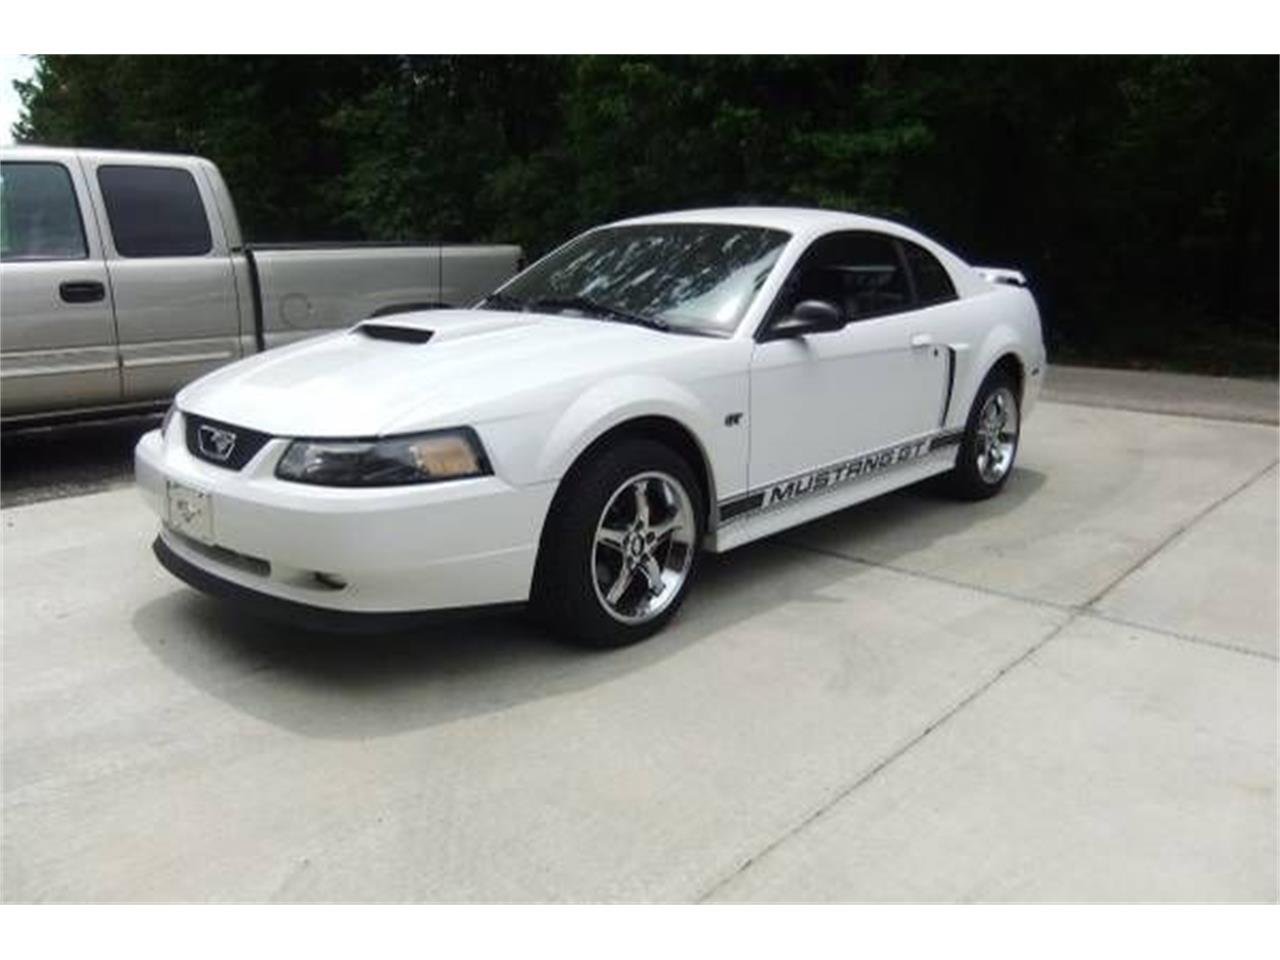 Large picture of 2001 ford mustang 22495 00 offered by classic car deals okaj